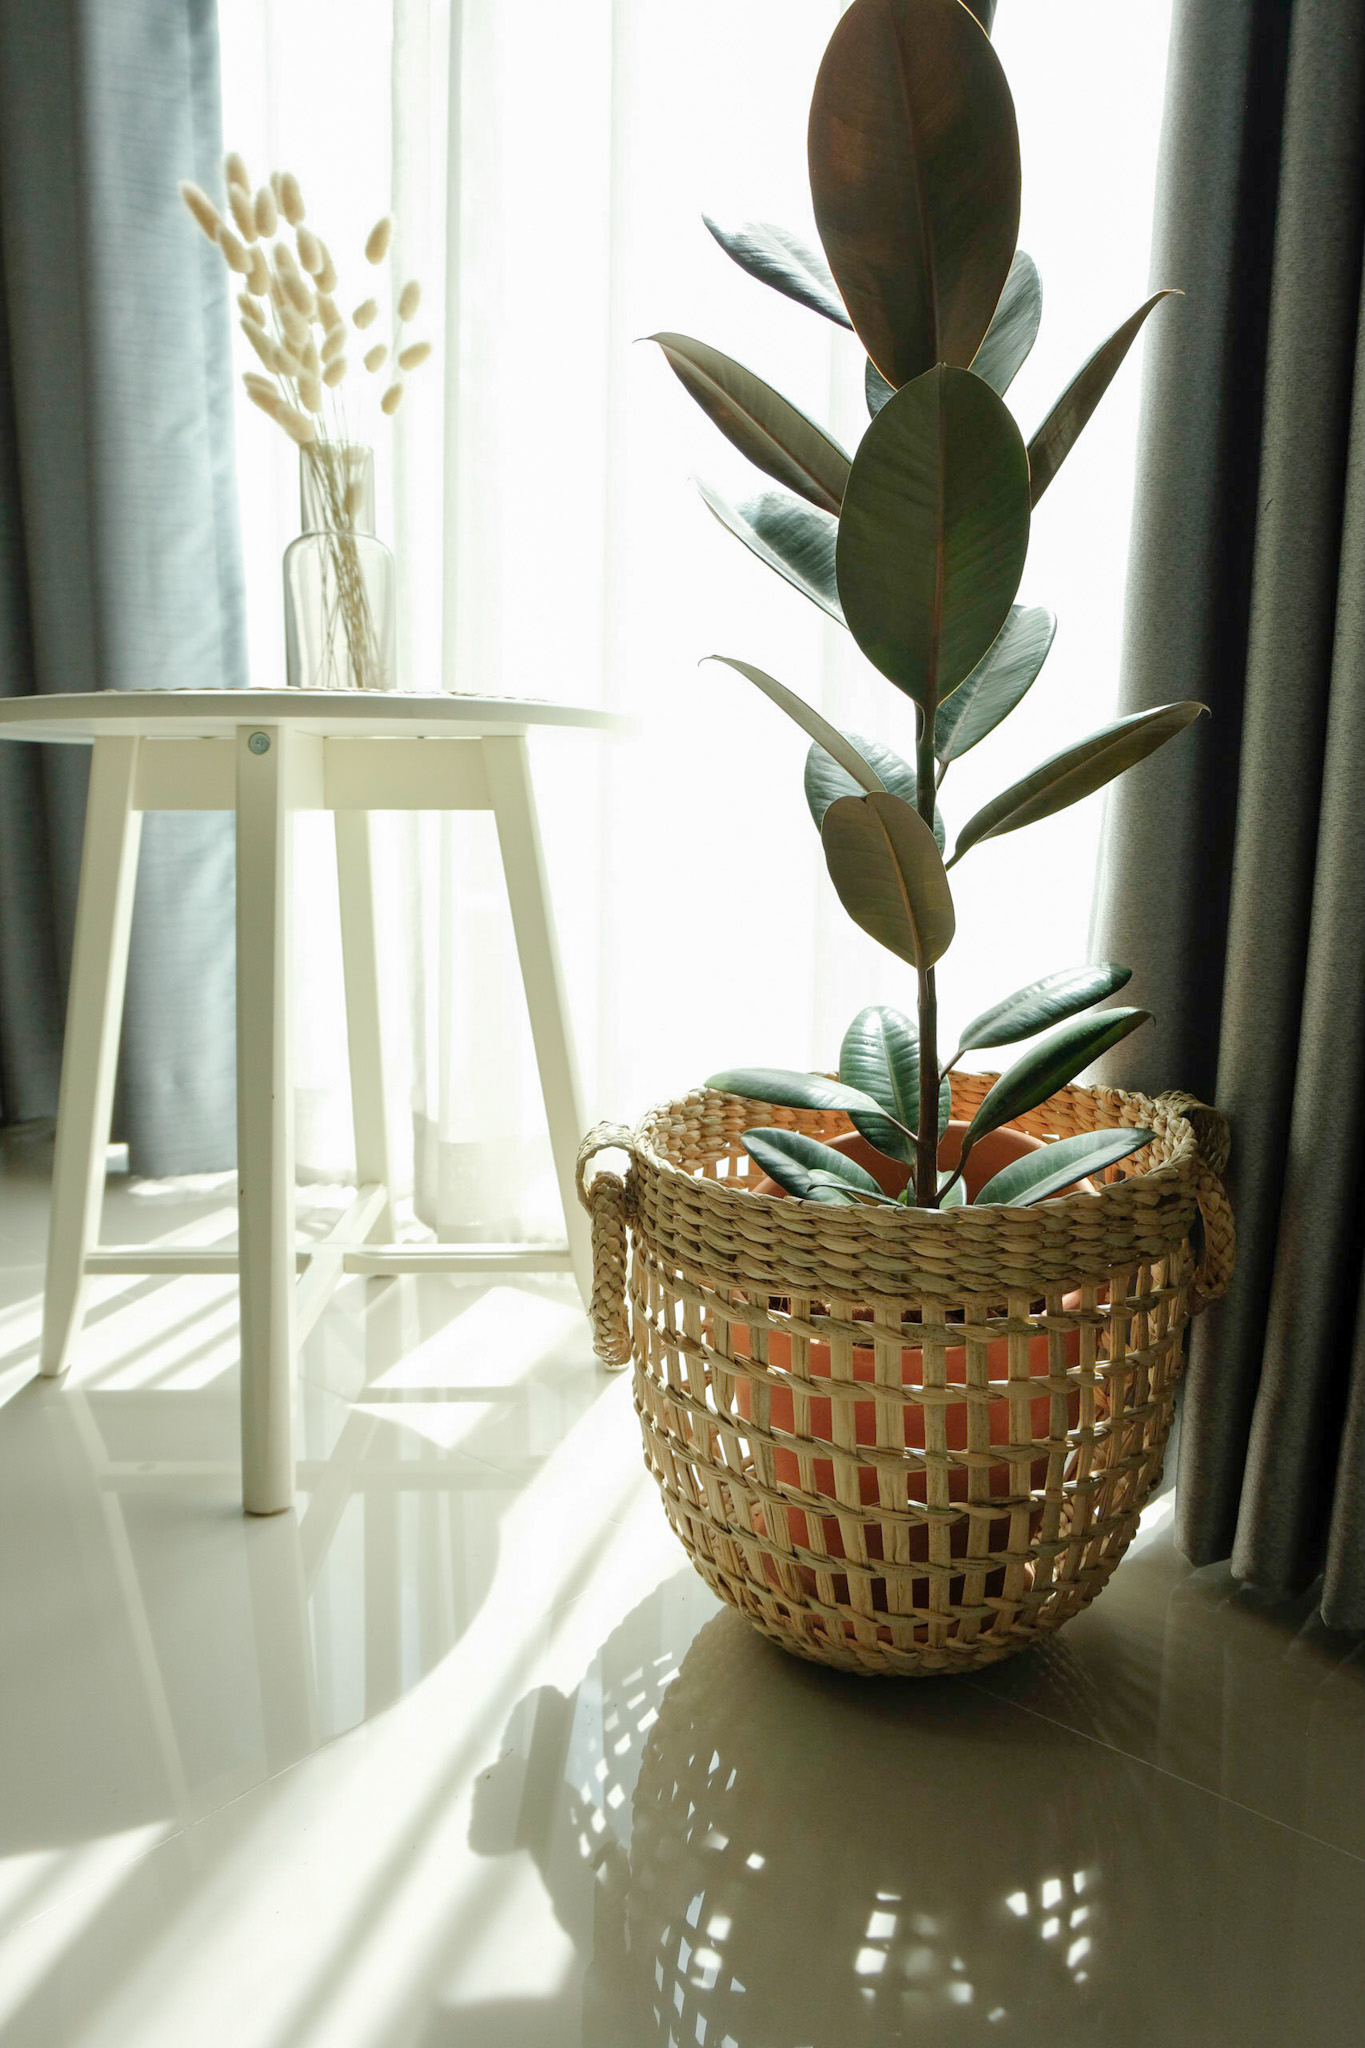 Boone basket Nature Size S BSB-16